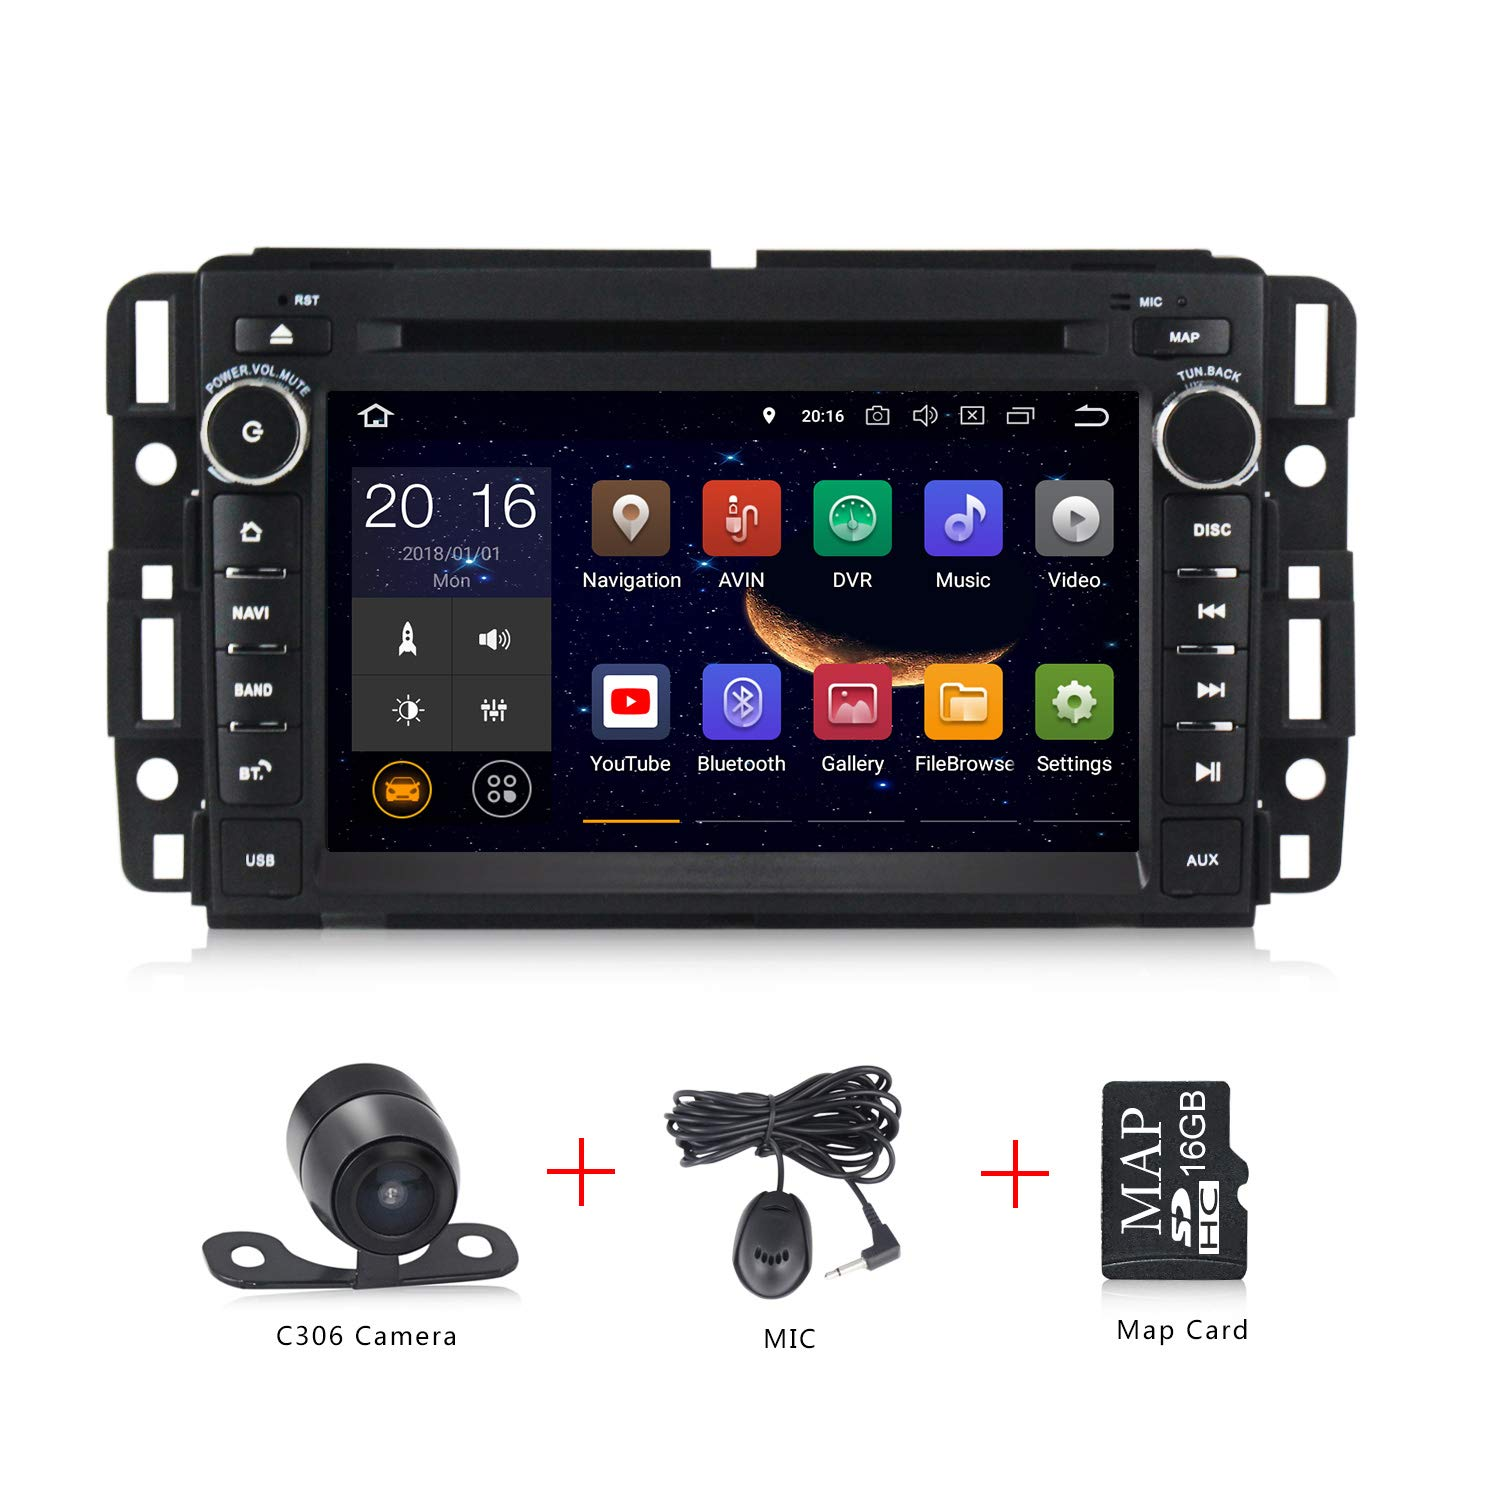 Android 9.0 Car Stereo 7 inch DVD Player for GMC Chevy Silverado 1500 2012 Quad Core Double Din in Dash Touchscreen FM/AM Radio Receiver Navigation with Rear View Camera by MekedeTech